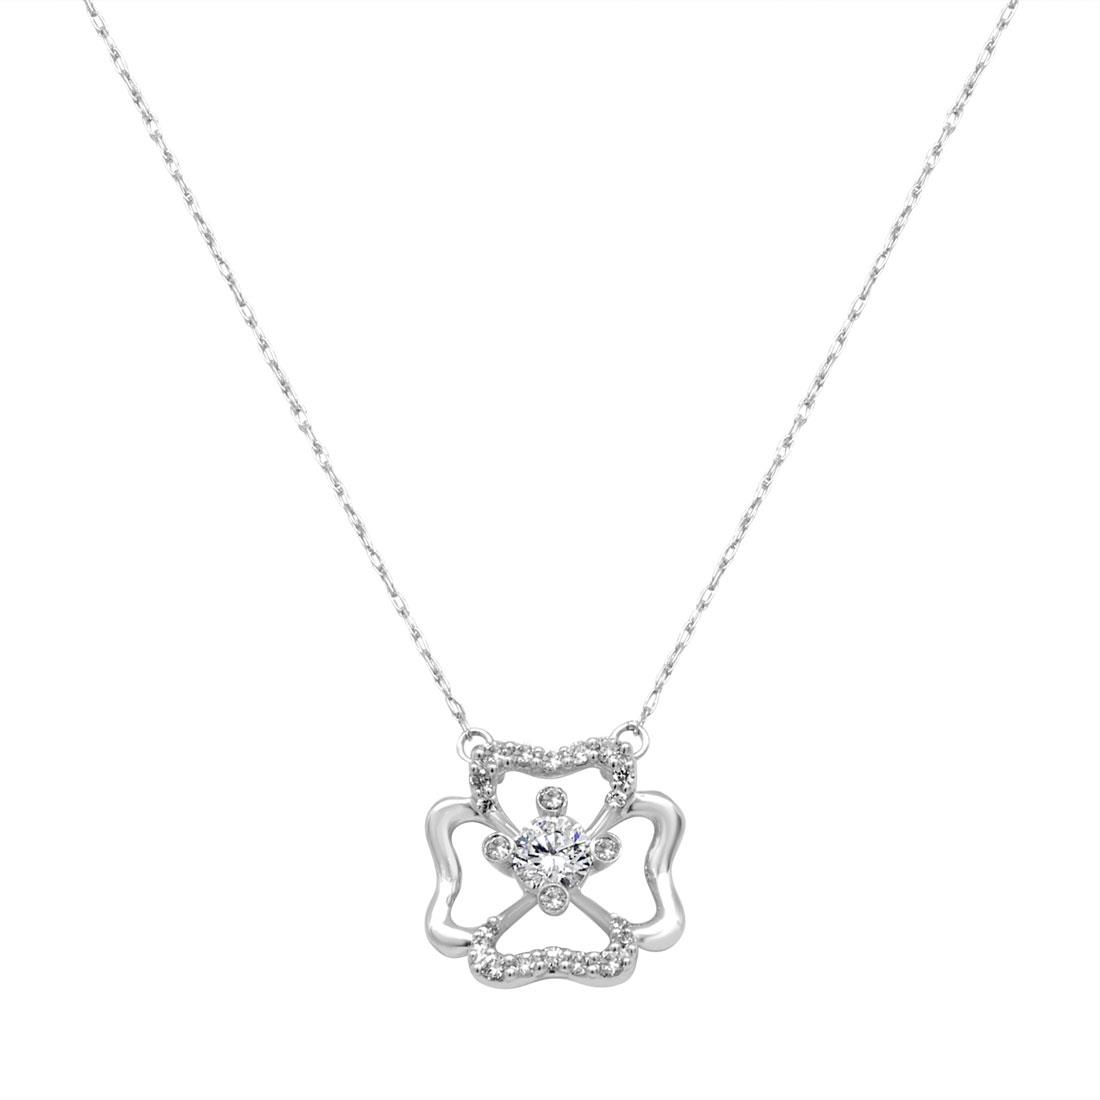 White gold necklace with flower-shaped diamonds - BLISS